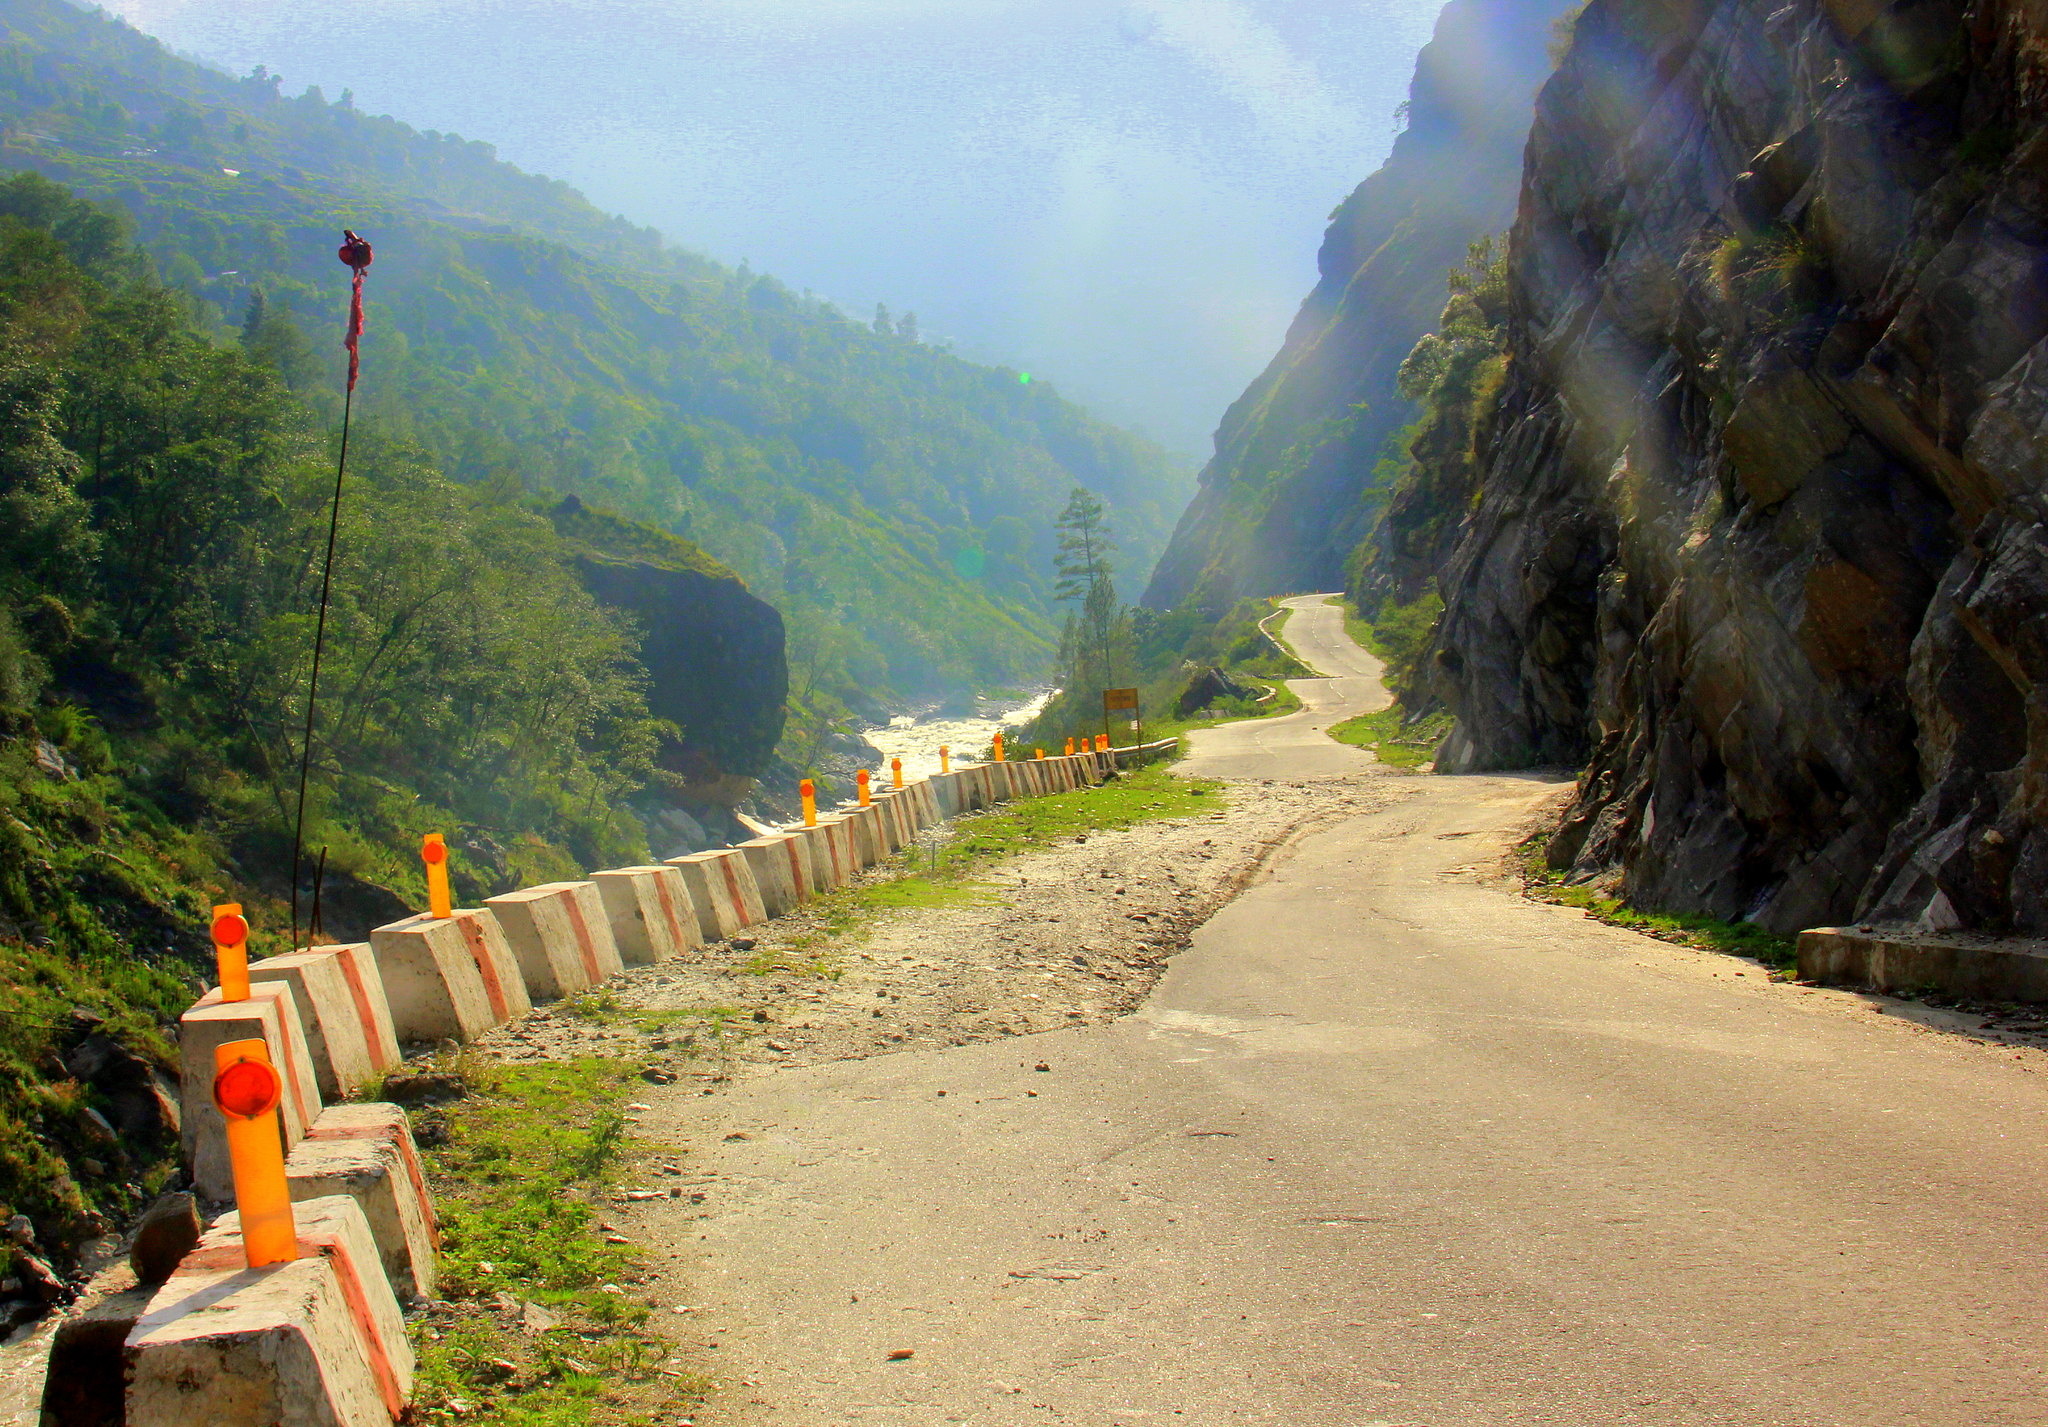 The road got narrower as we headed towards Govindghat from Joshimath